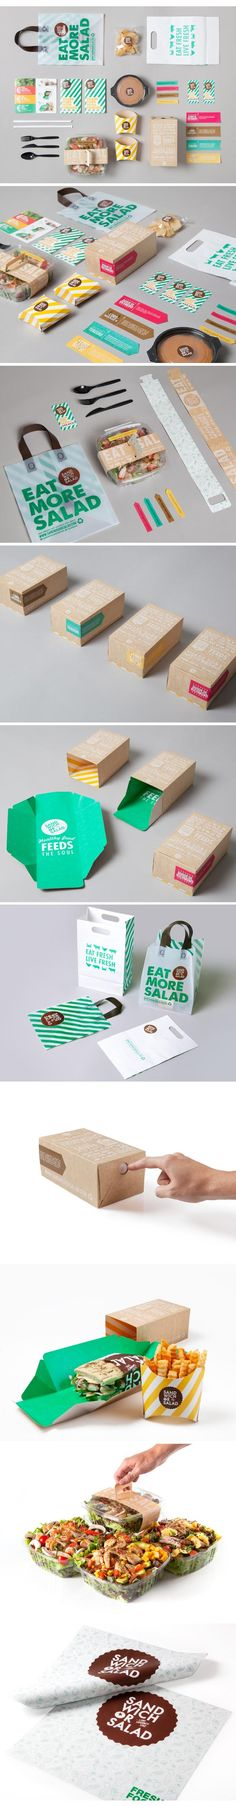 Sandwich or Salad branding